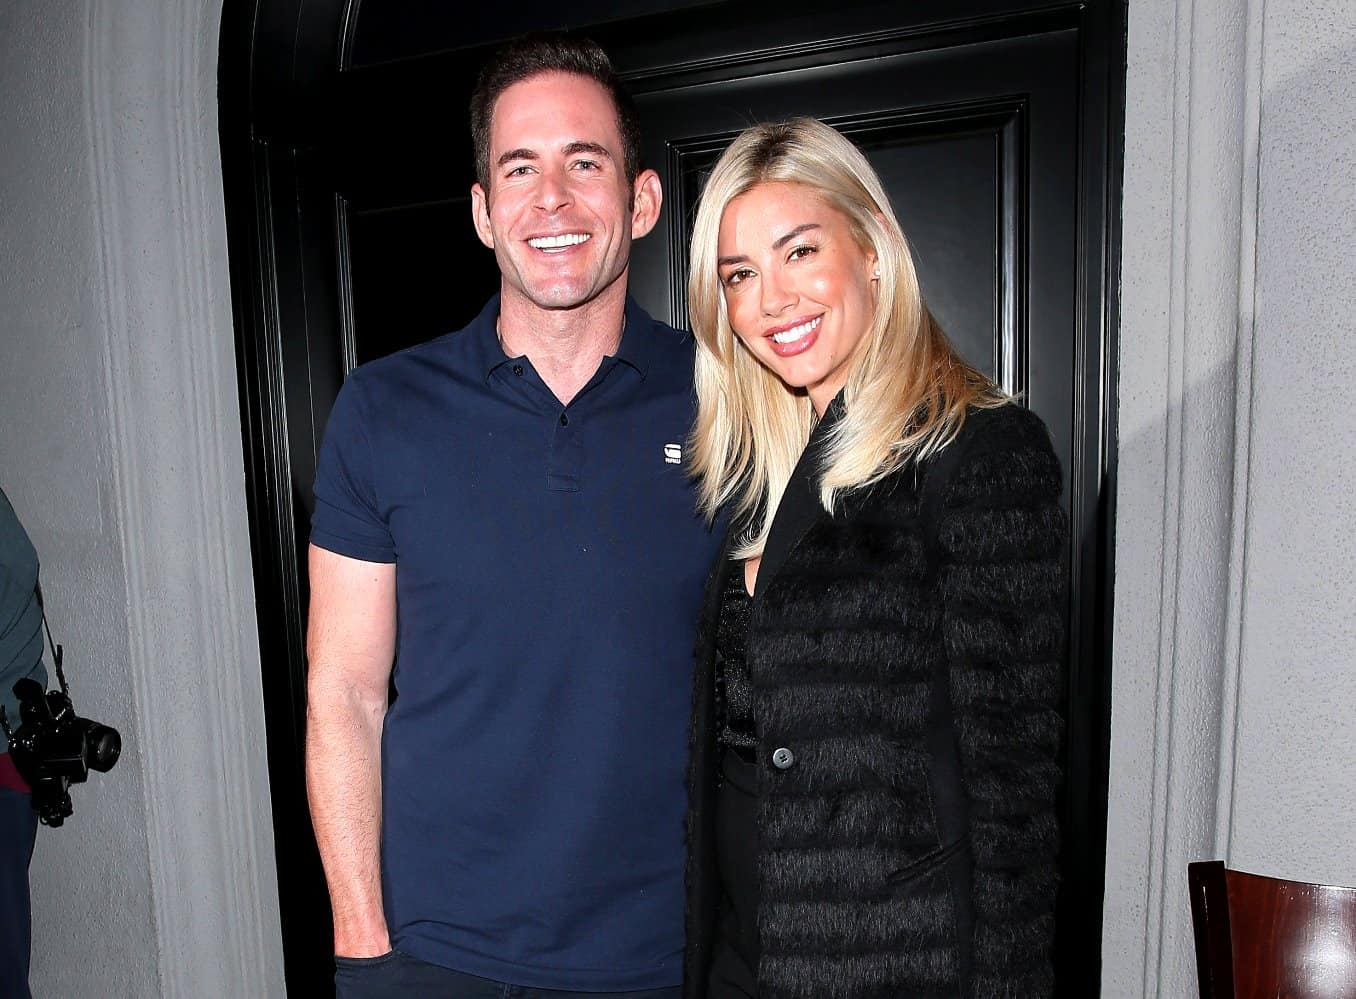 """Heather Rae Young Faces Backlash For Tattoo of Fiance Tarek El Moussa on Her Body, See the """"Yes Sir, Mr. El Moussa"""" Tattoo Photo as Sunset Star Defends it After Deleting it"""